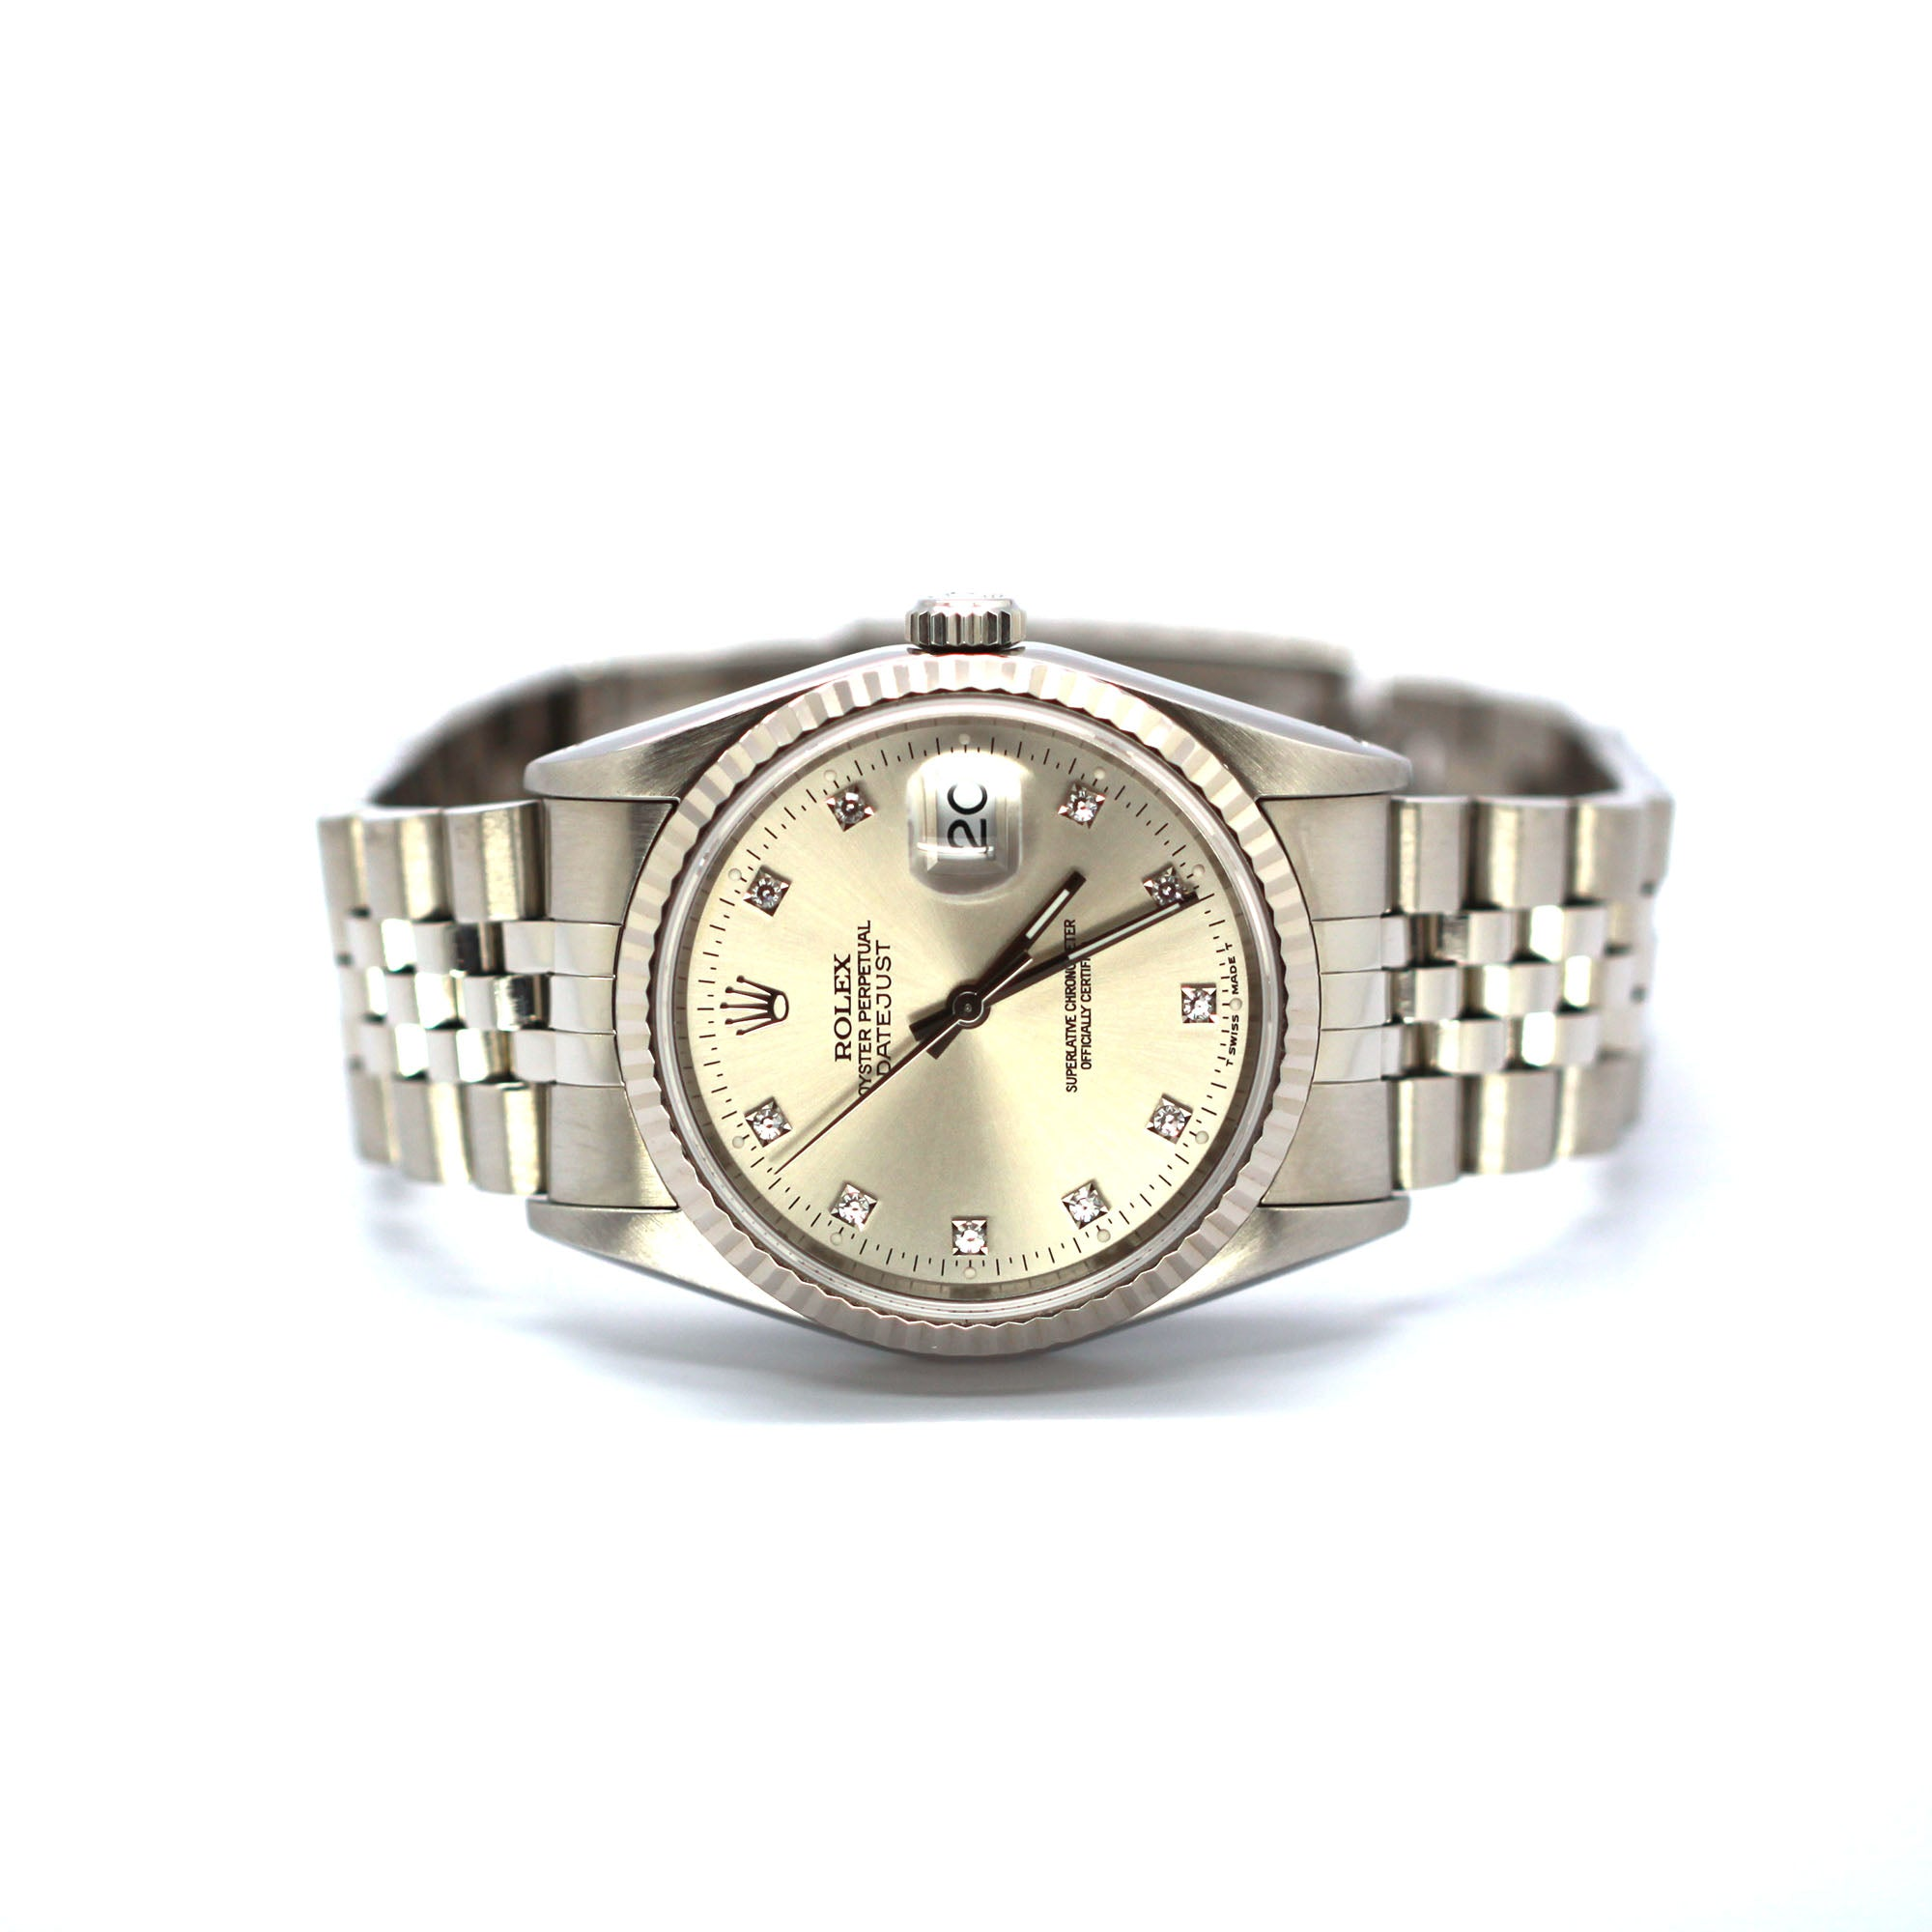 PREOWNED ROLEX DATEJUST 16234 SILVER DIAMOND 36MM